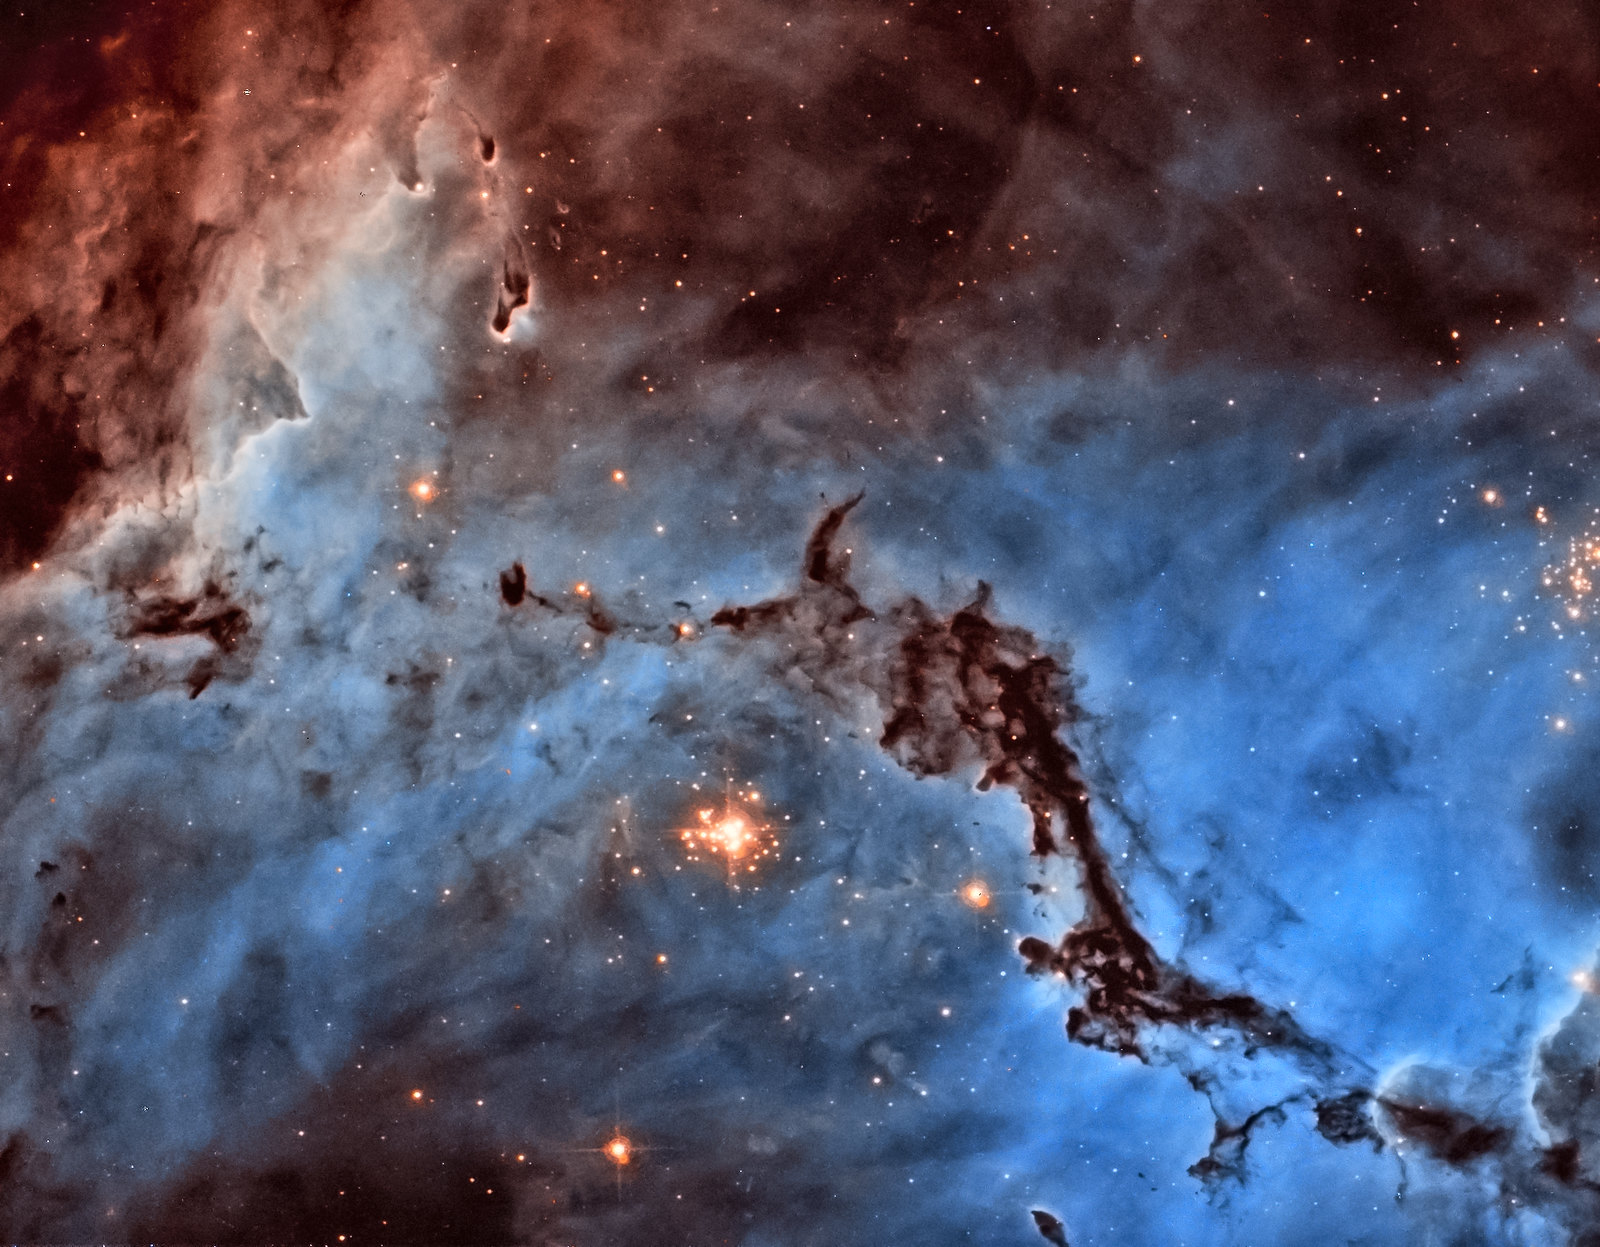 Hubble Space Telescope Archives - Bad Astronomy : Bad Astronomy